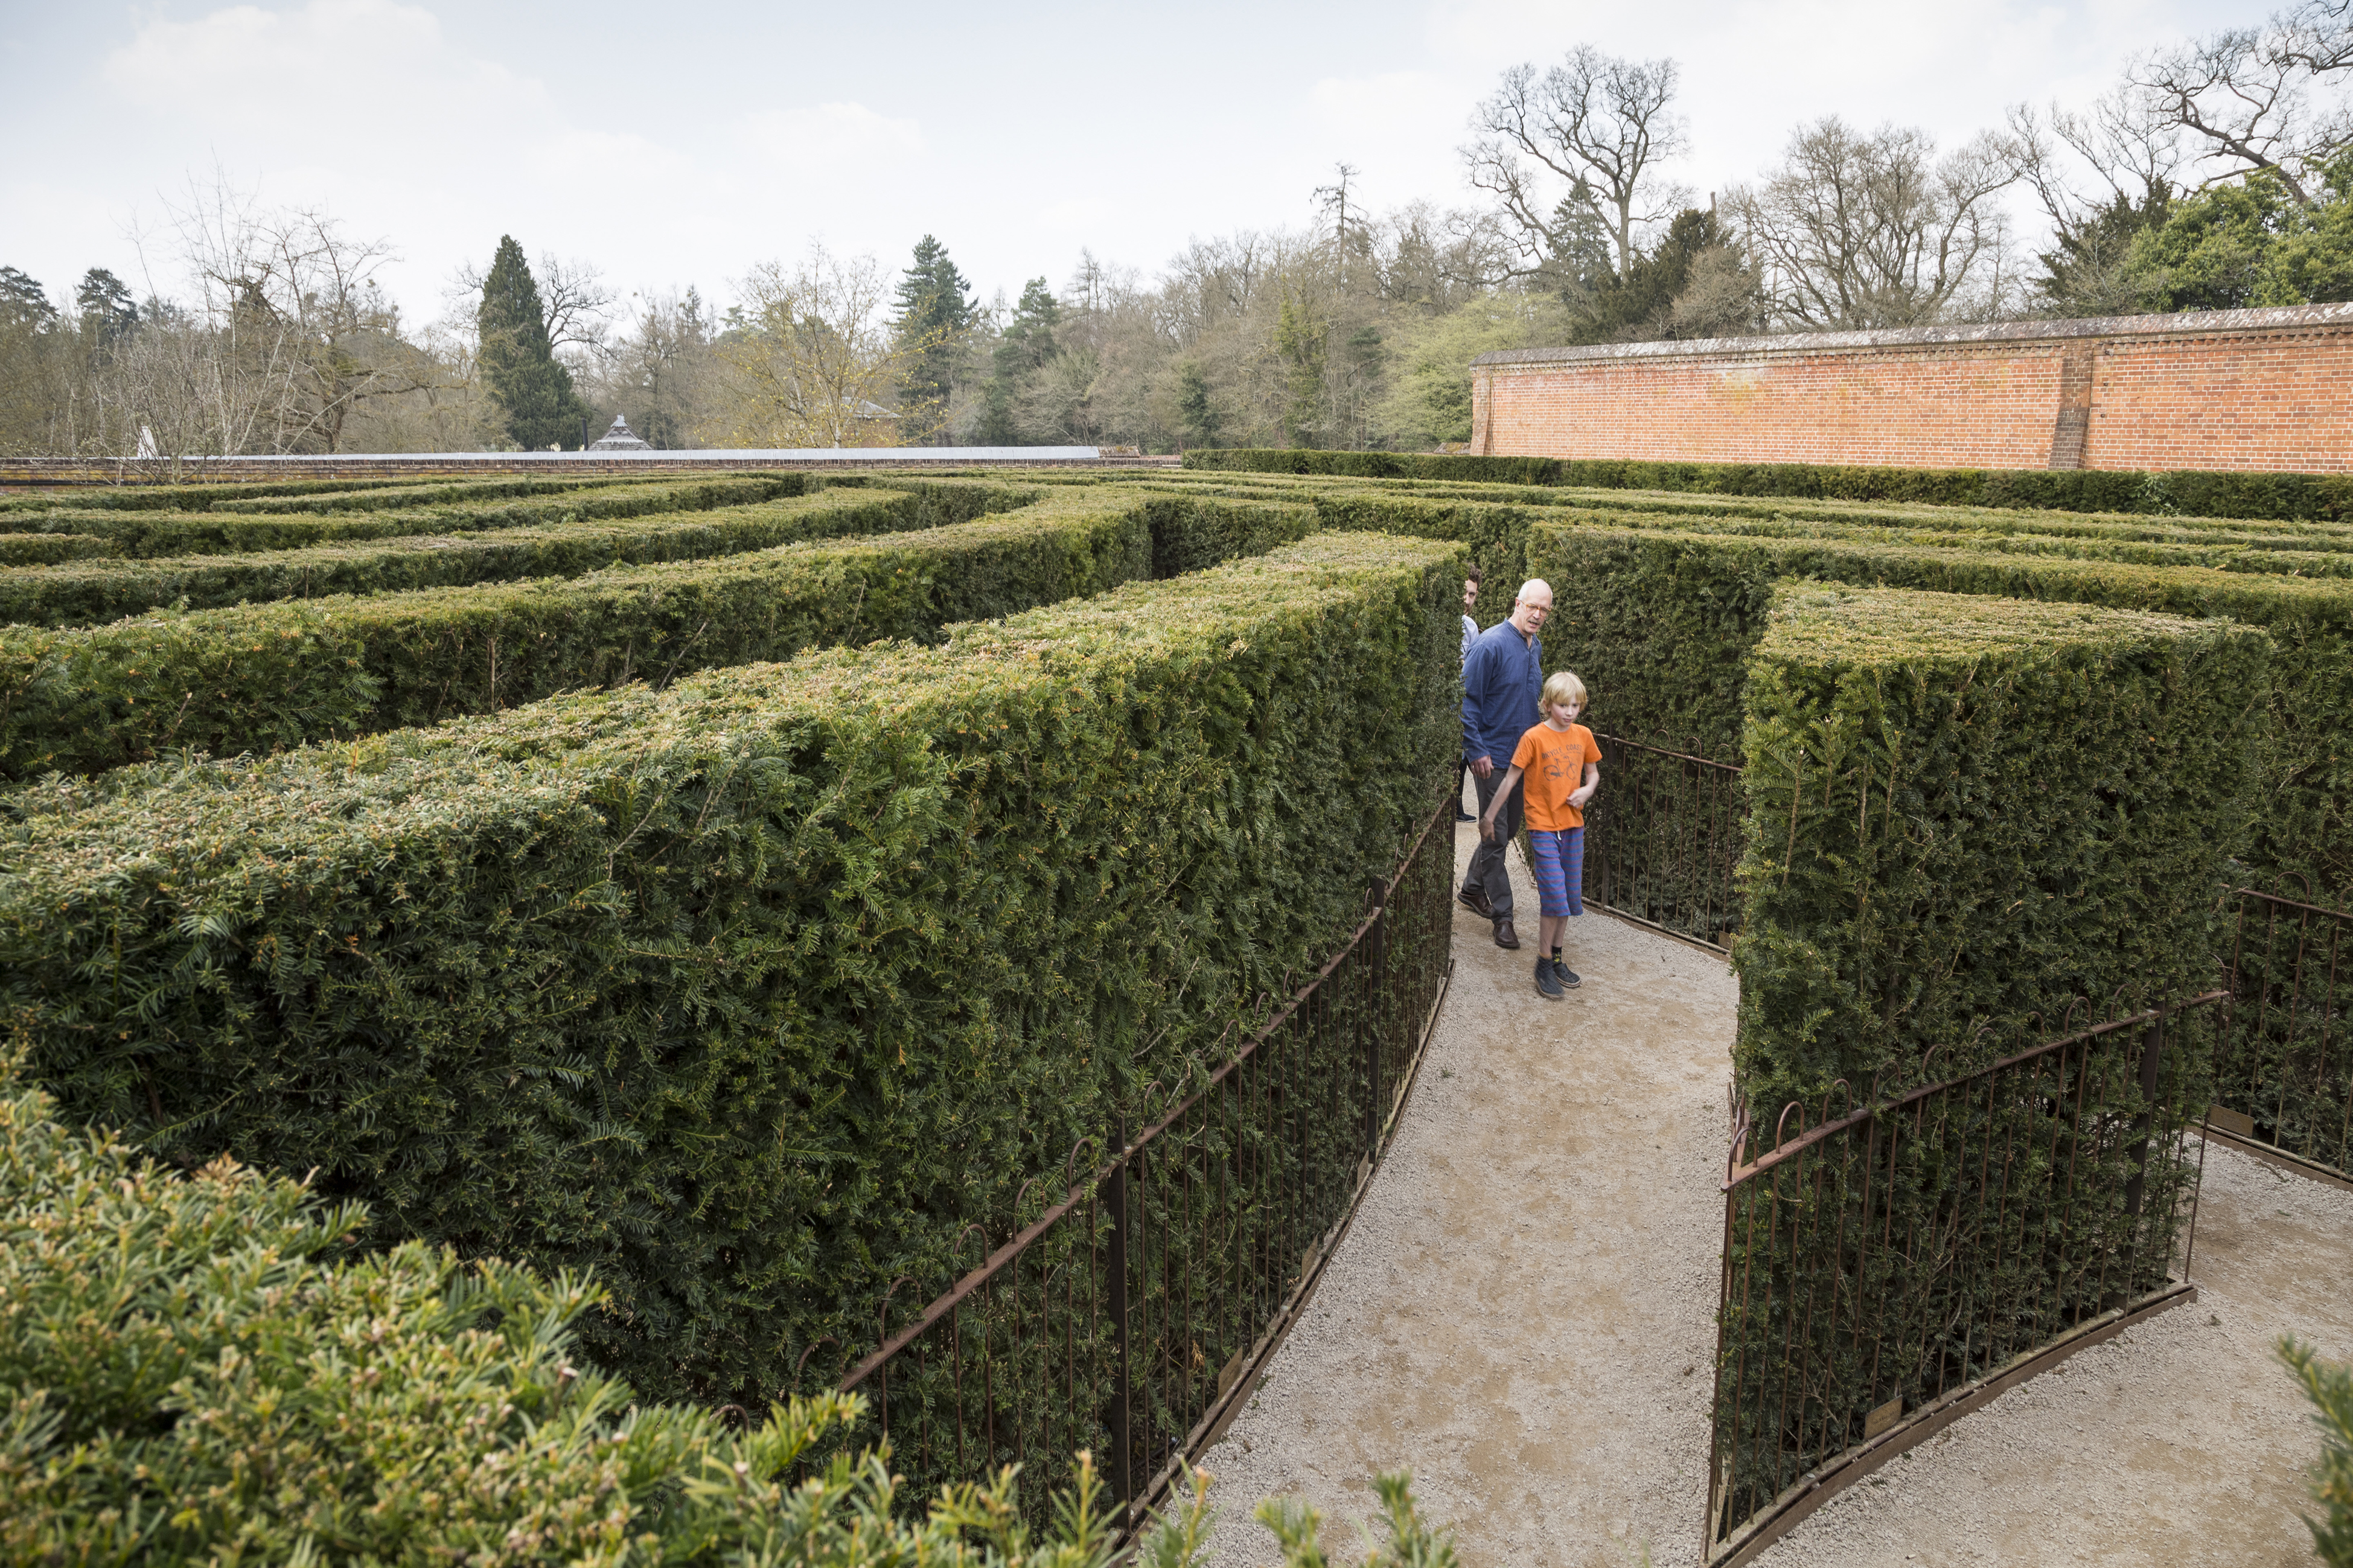 Get lost in the maze at Cliveden (Chris Lacey/National Trust/PA)